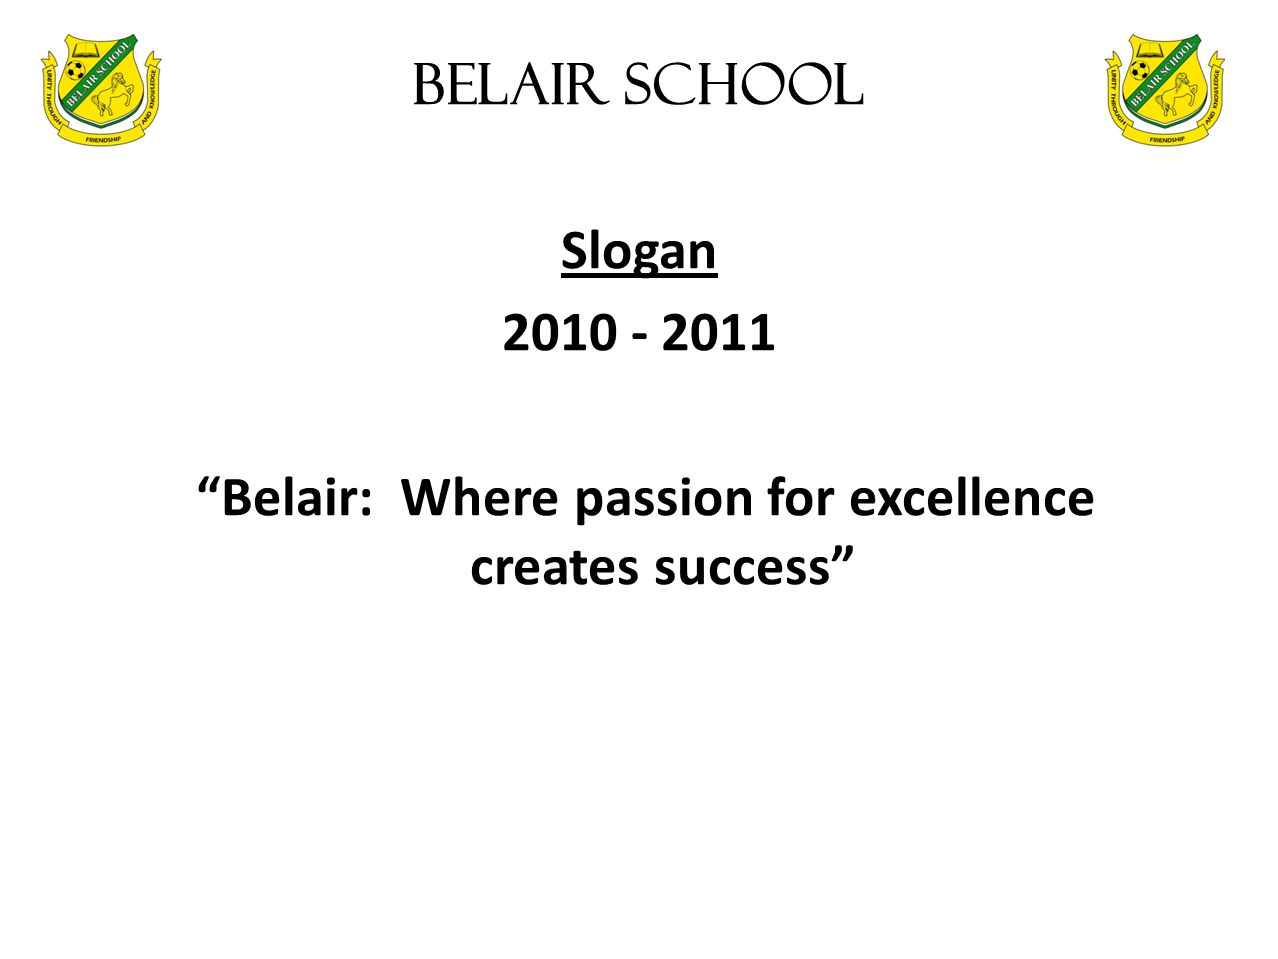 Belair: Where passion for excellence creates success